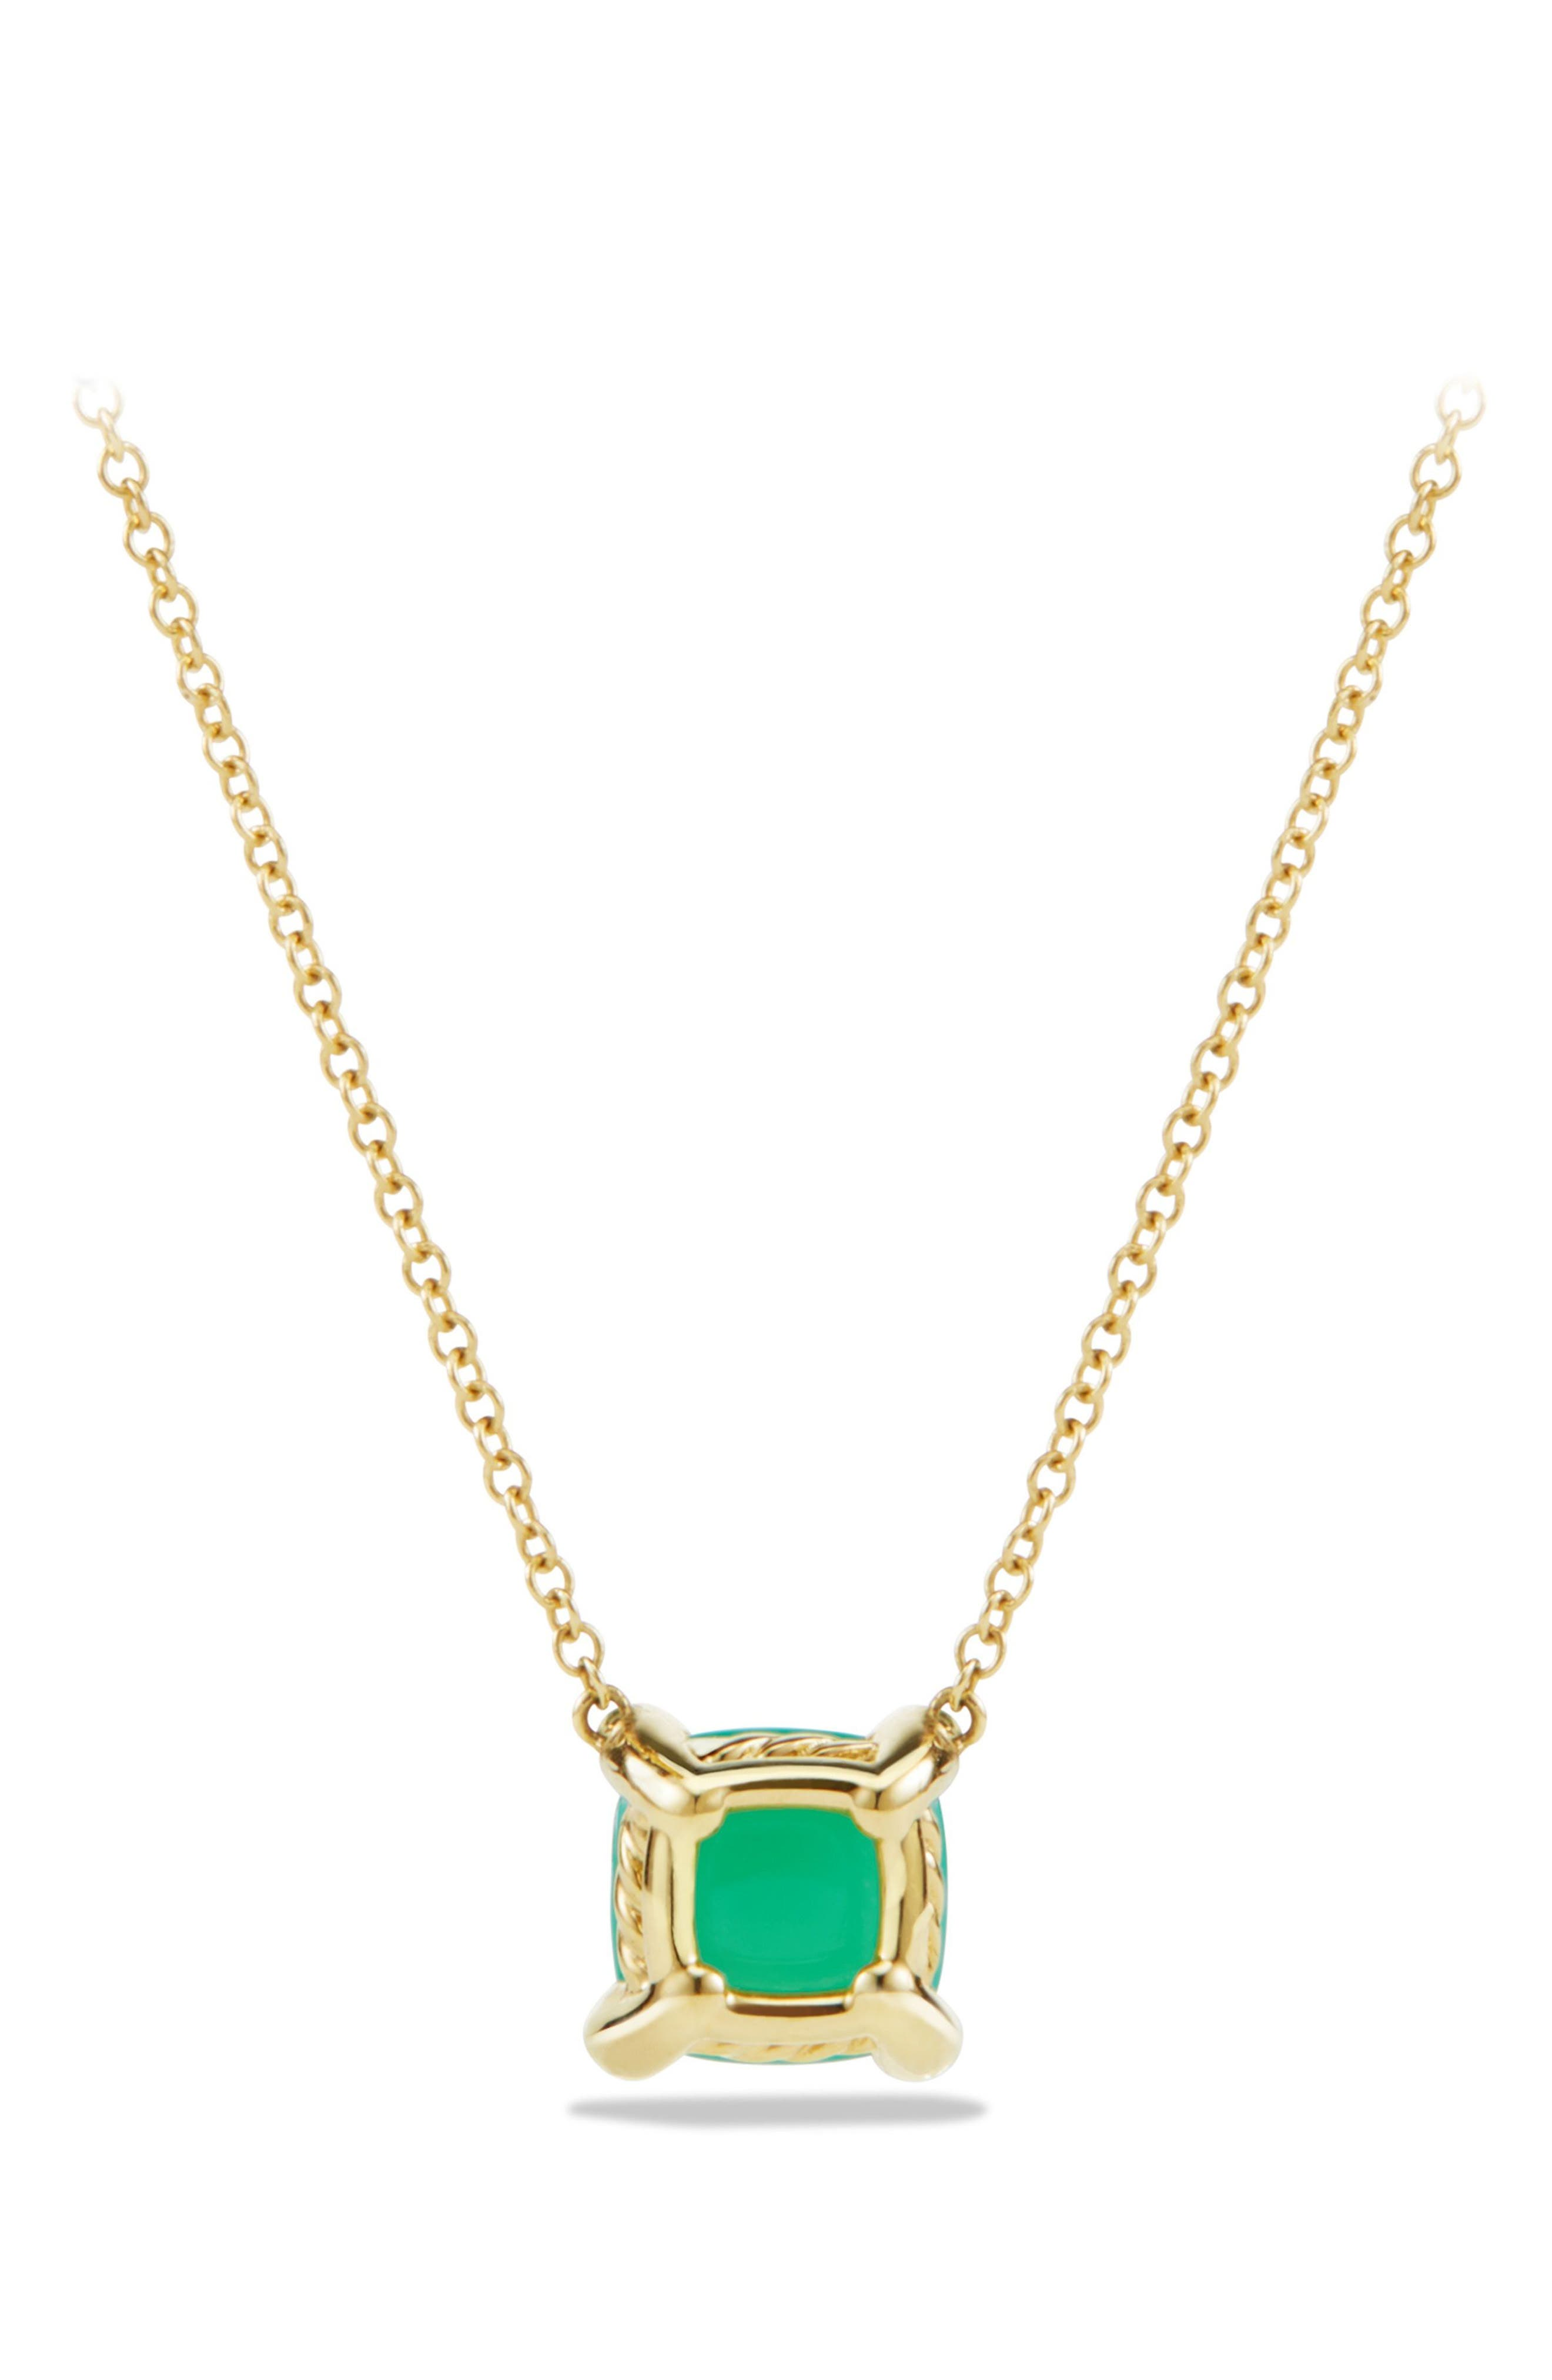 'Châtelaine' Pendant Necklace with Semiprecious Stone and Diamonds in 18K Gold,                             Alternate thumbnail 3, color,                             CHRYSOPRASE